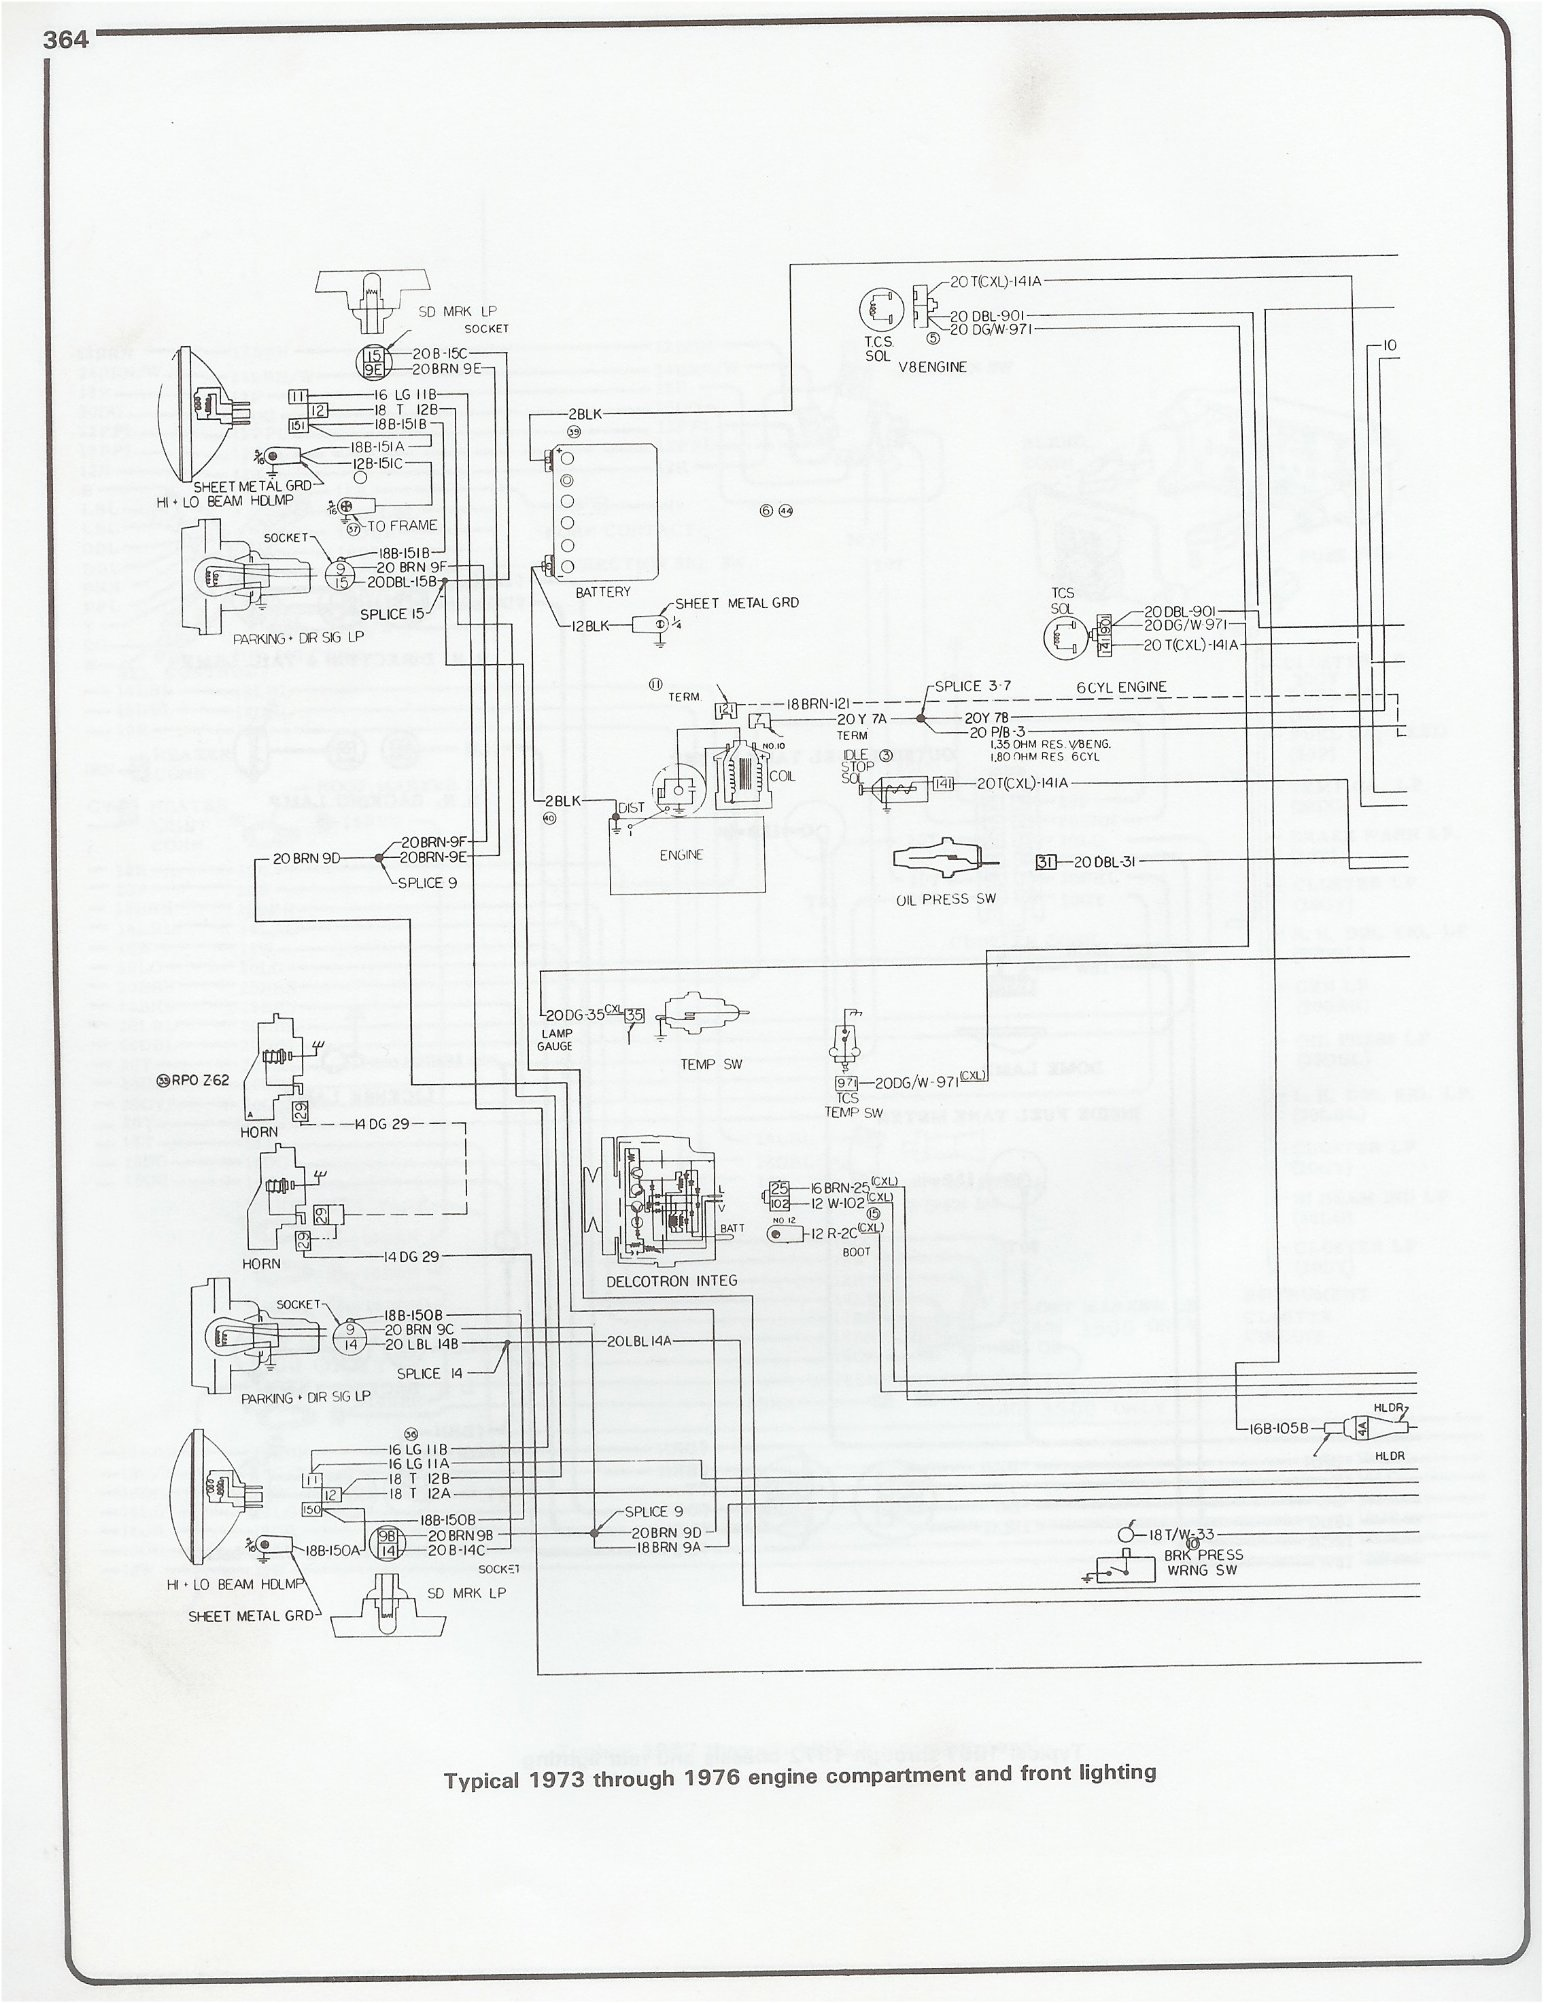 1973 chevy c60 fuse block diagram | wiring library 66 caprice wiring diagram #15